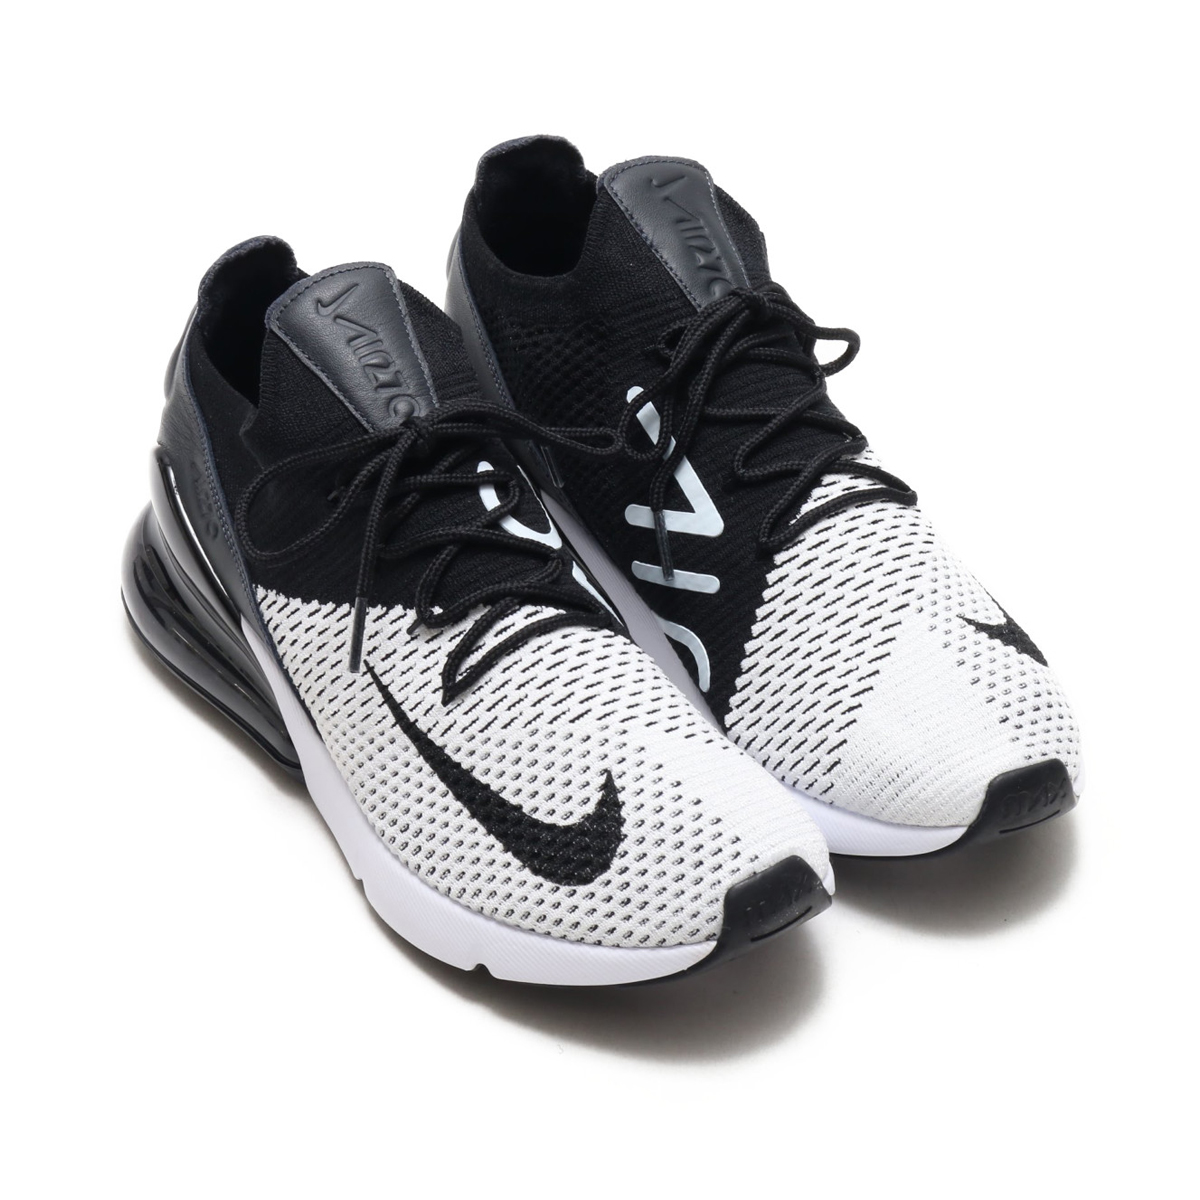 nike air max 270 flyknit - men shoes